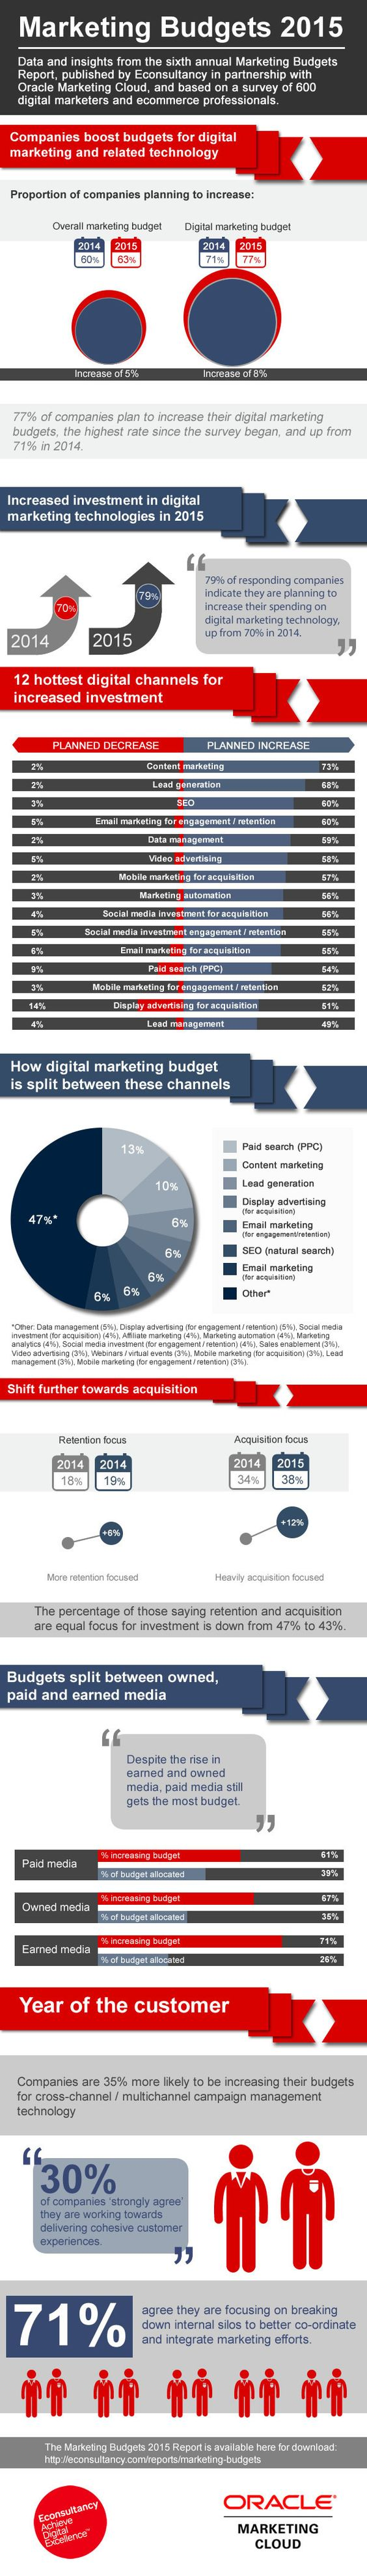 #Marketing #Infographic: Marketing Budgets 2015